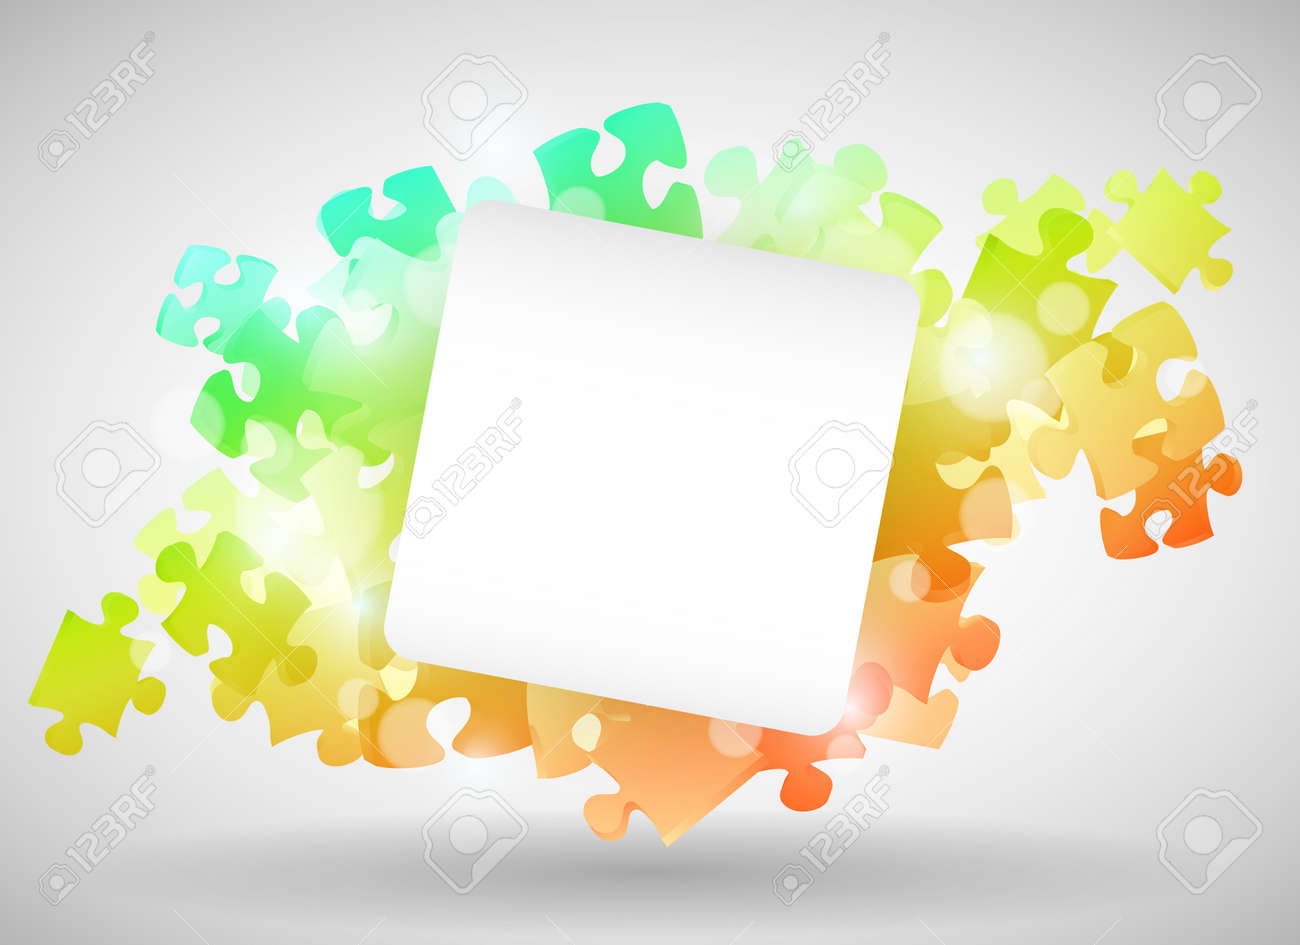 Colorful Puzzle Design with paper Stock Vector - 12498111